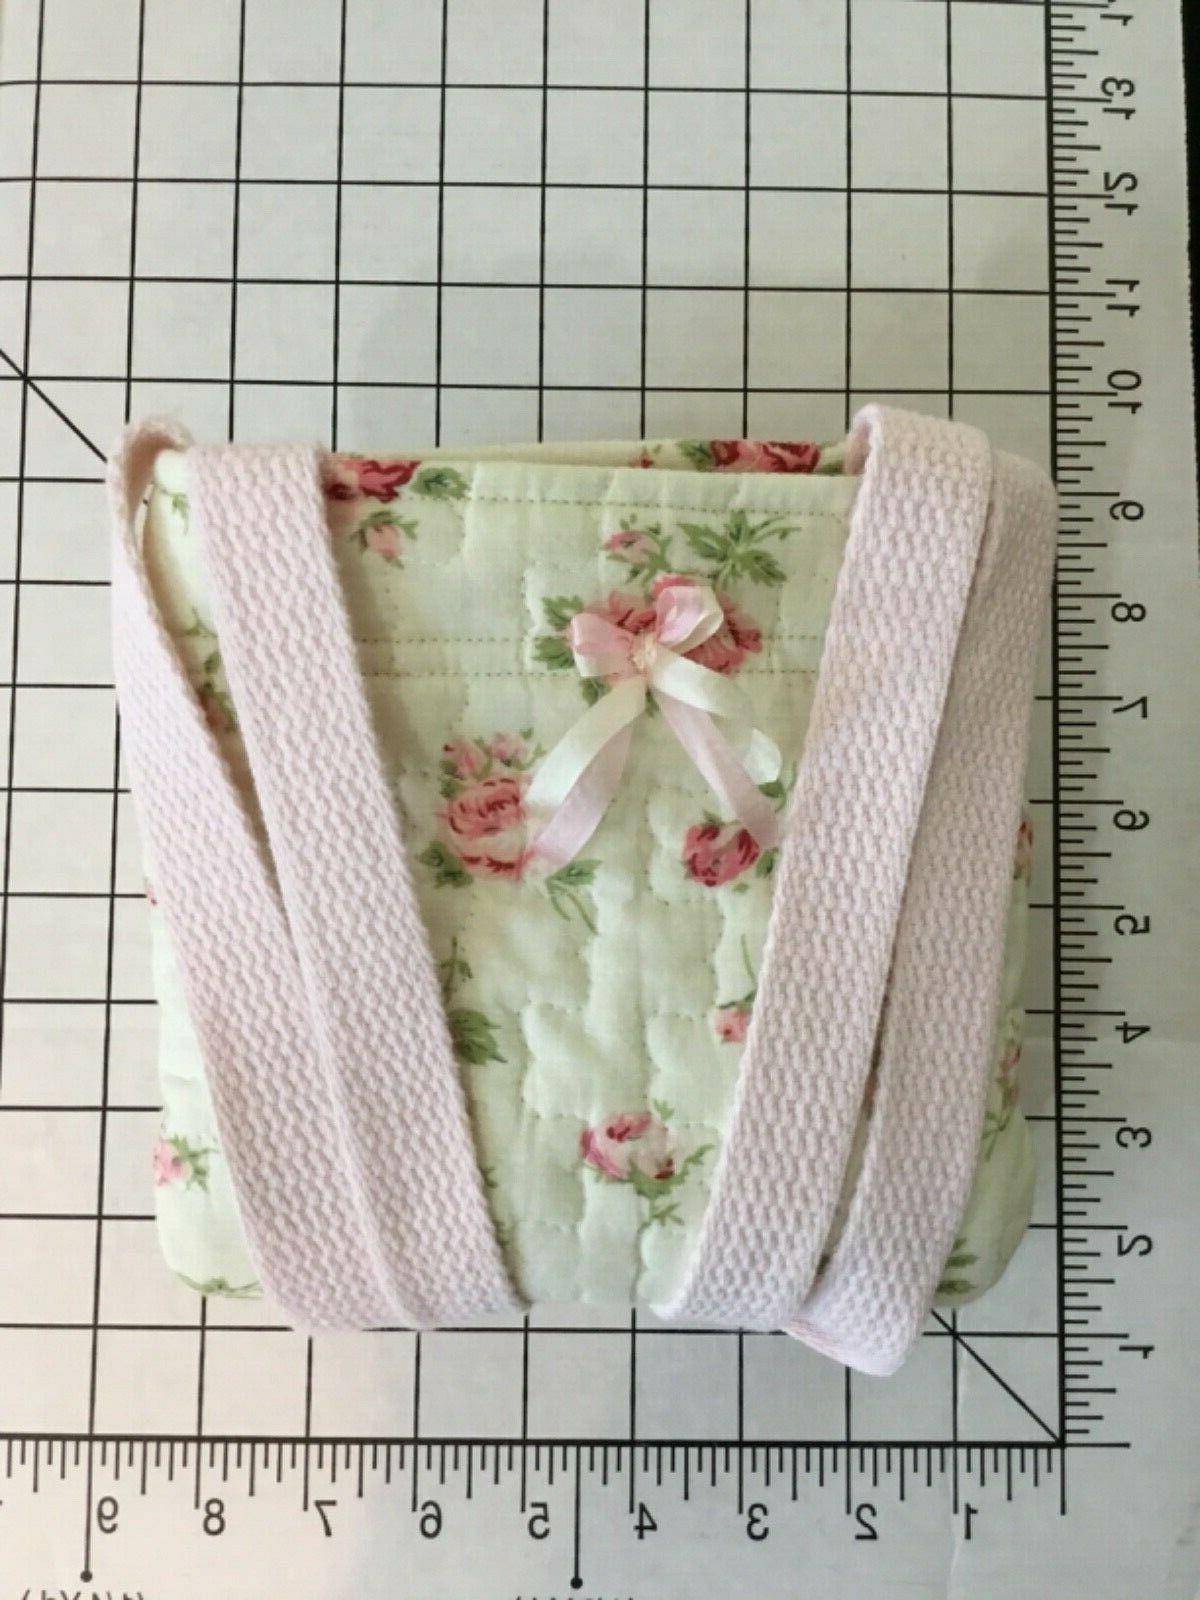 Handmade Cotton~Quilted Shop with Pink Roses Washable